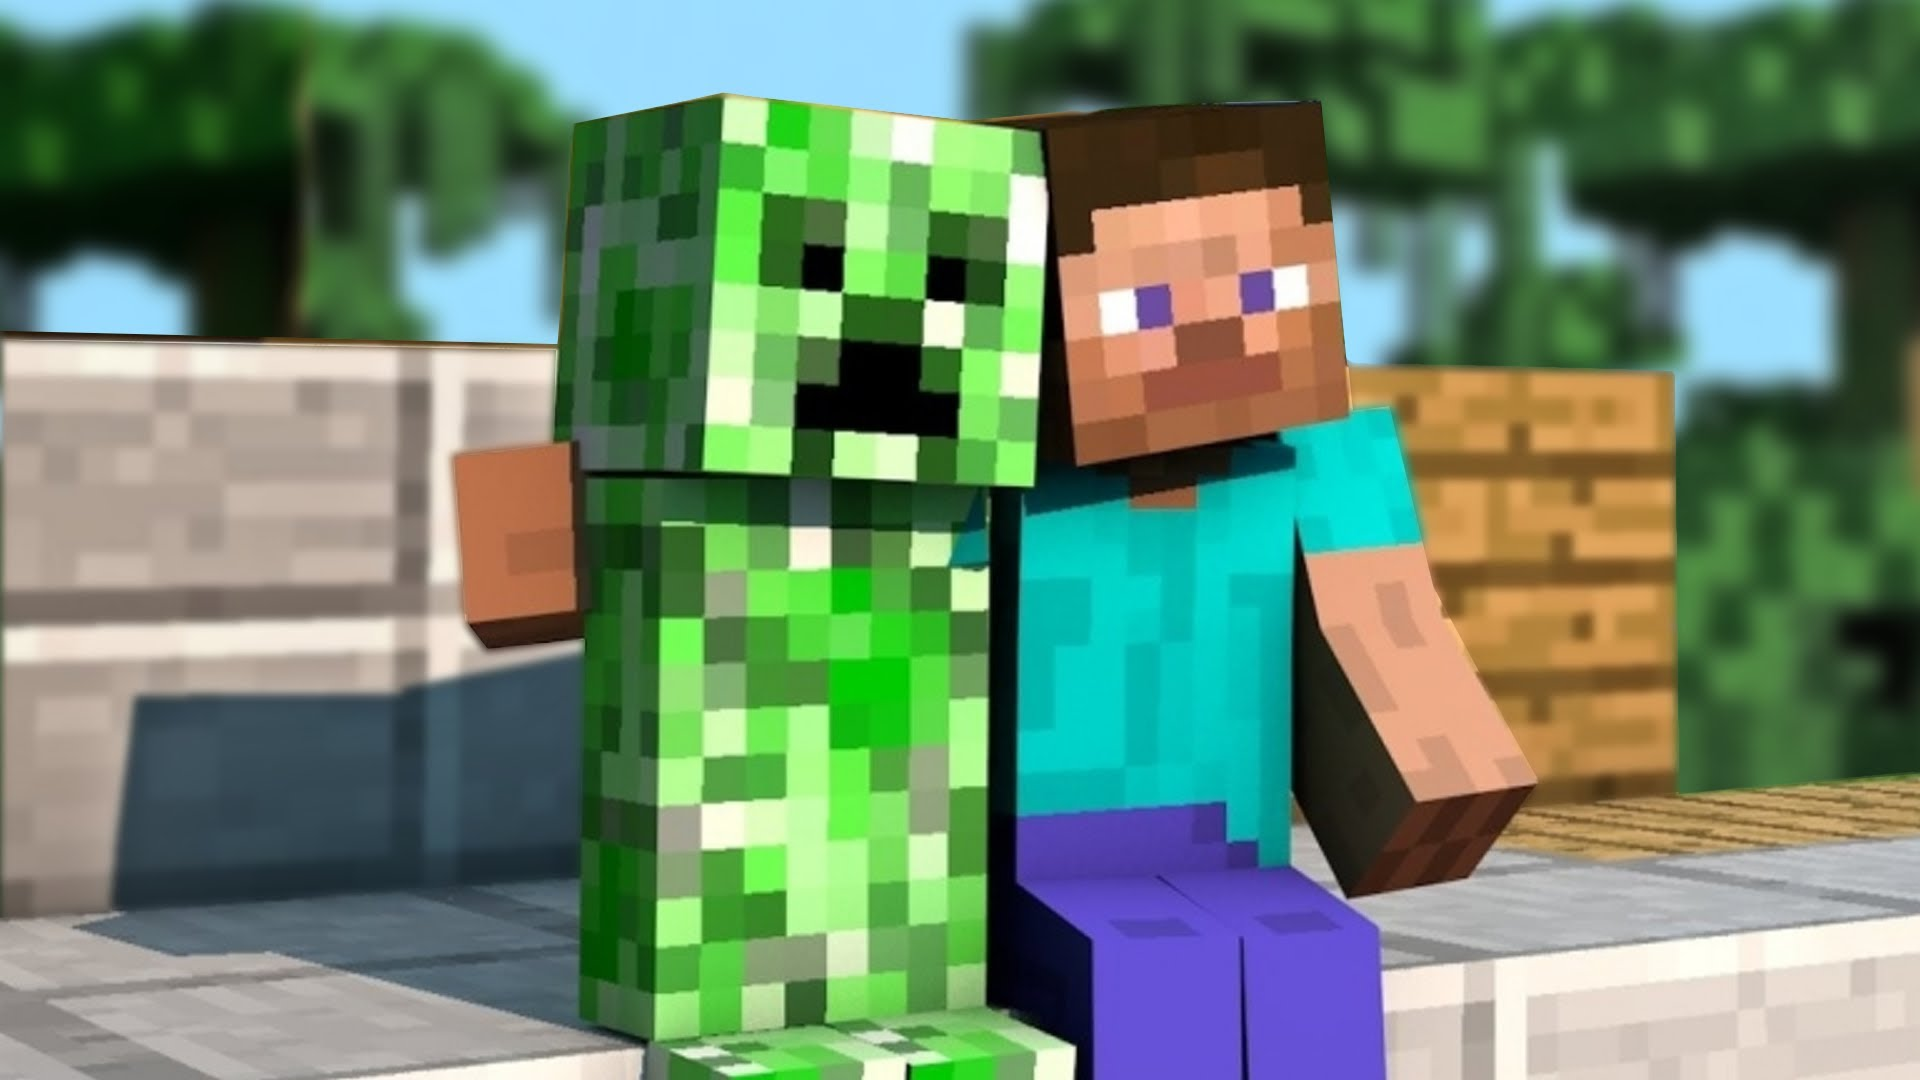 1000+ images about minecraft on Pinterest | Creepers